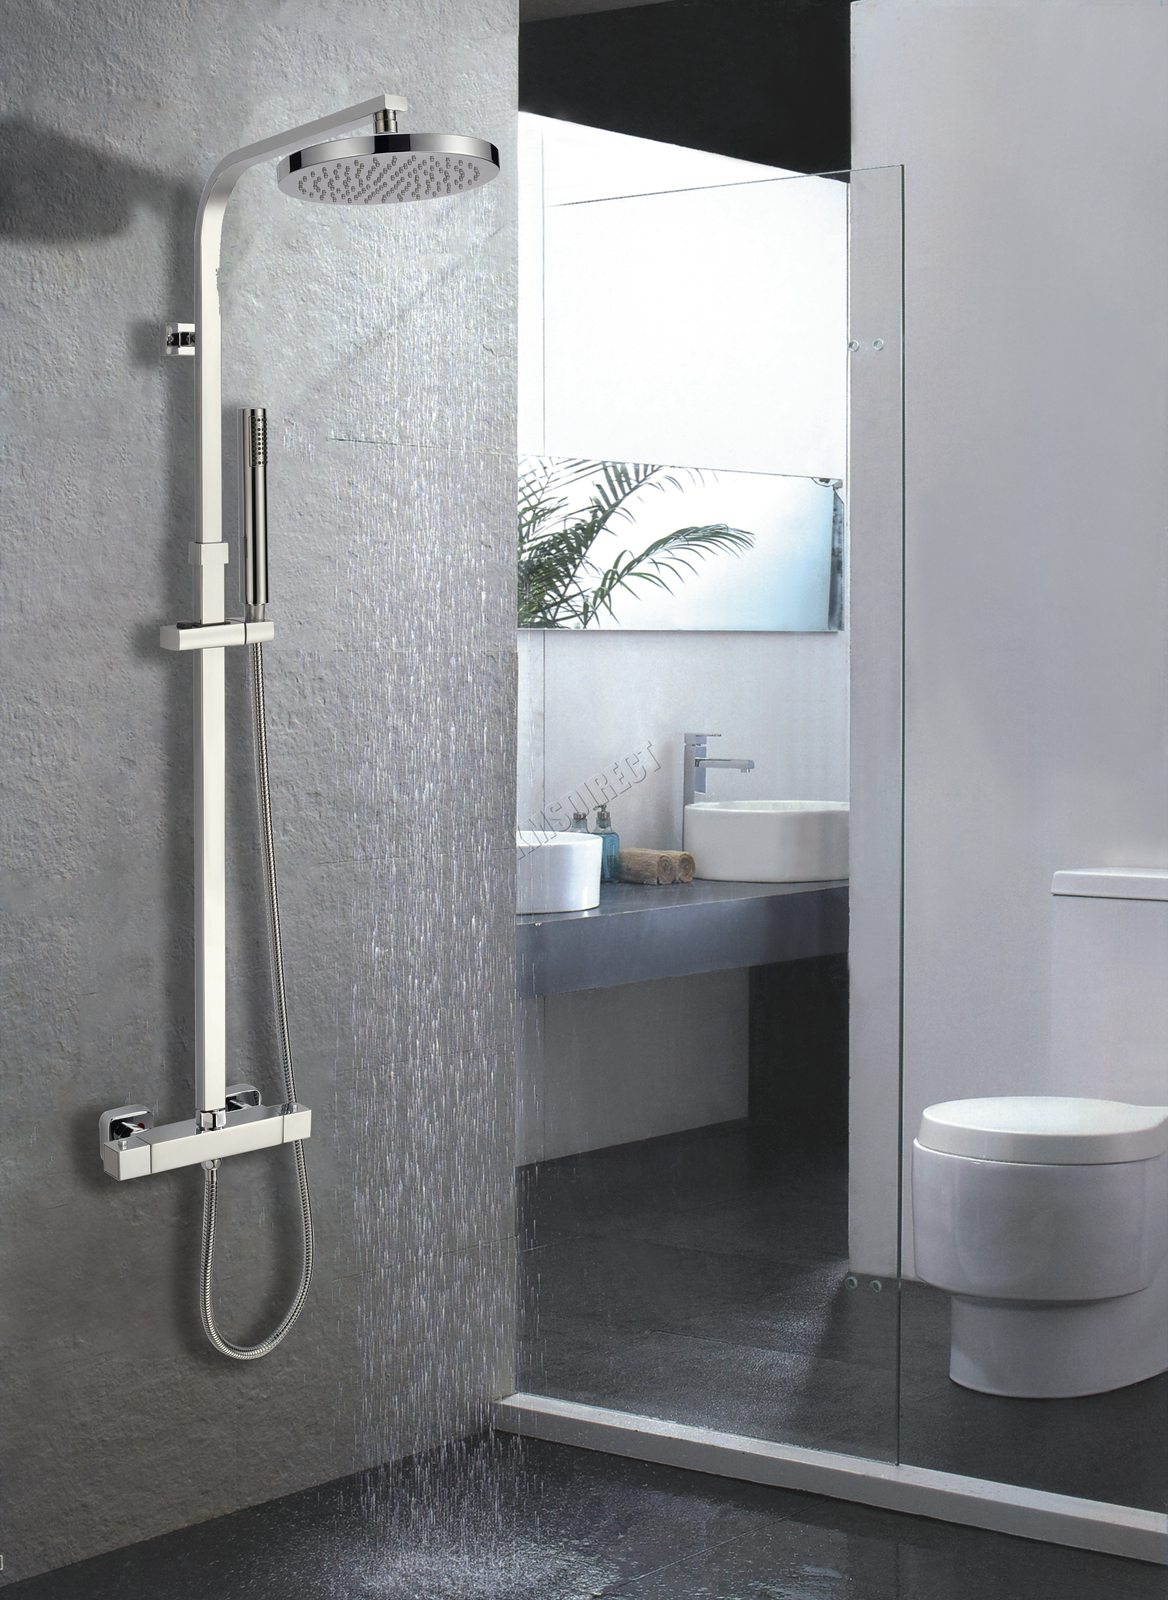 Salle De Bain En Espagnol Traduction ~ foxhunter bathroom mixer shower set twin head round square chrome